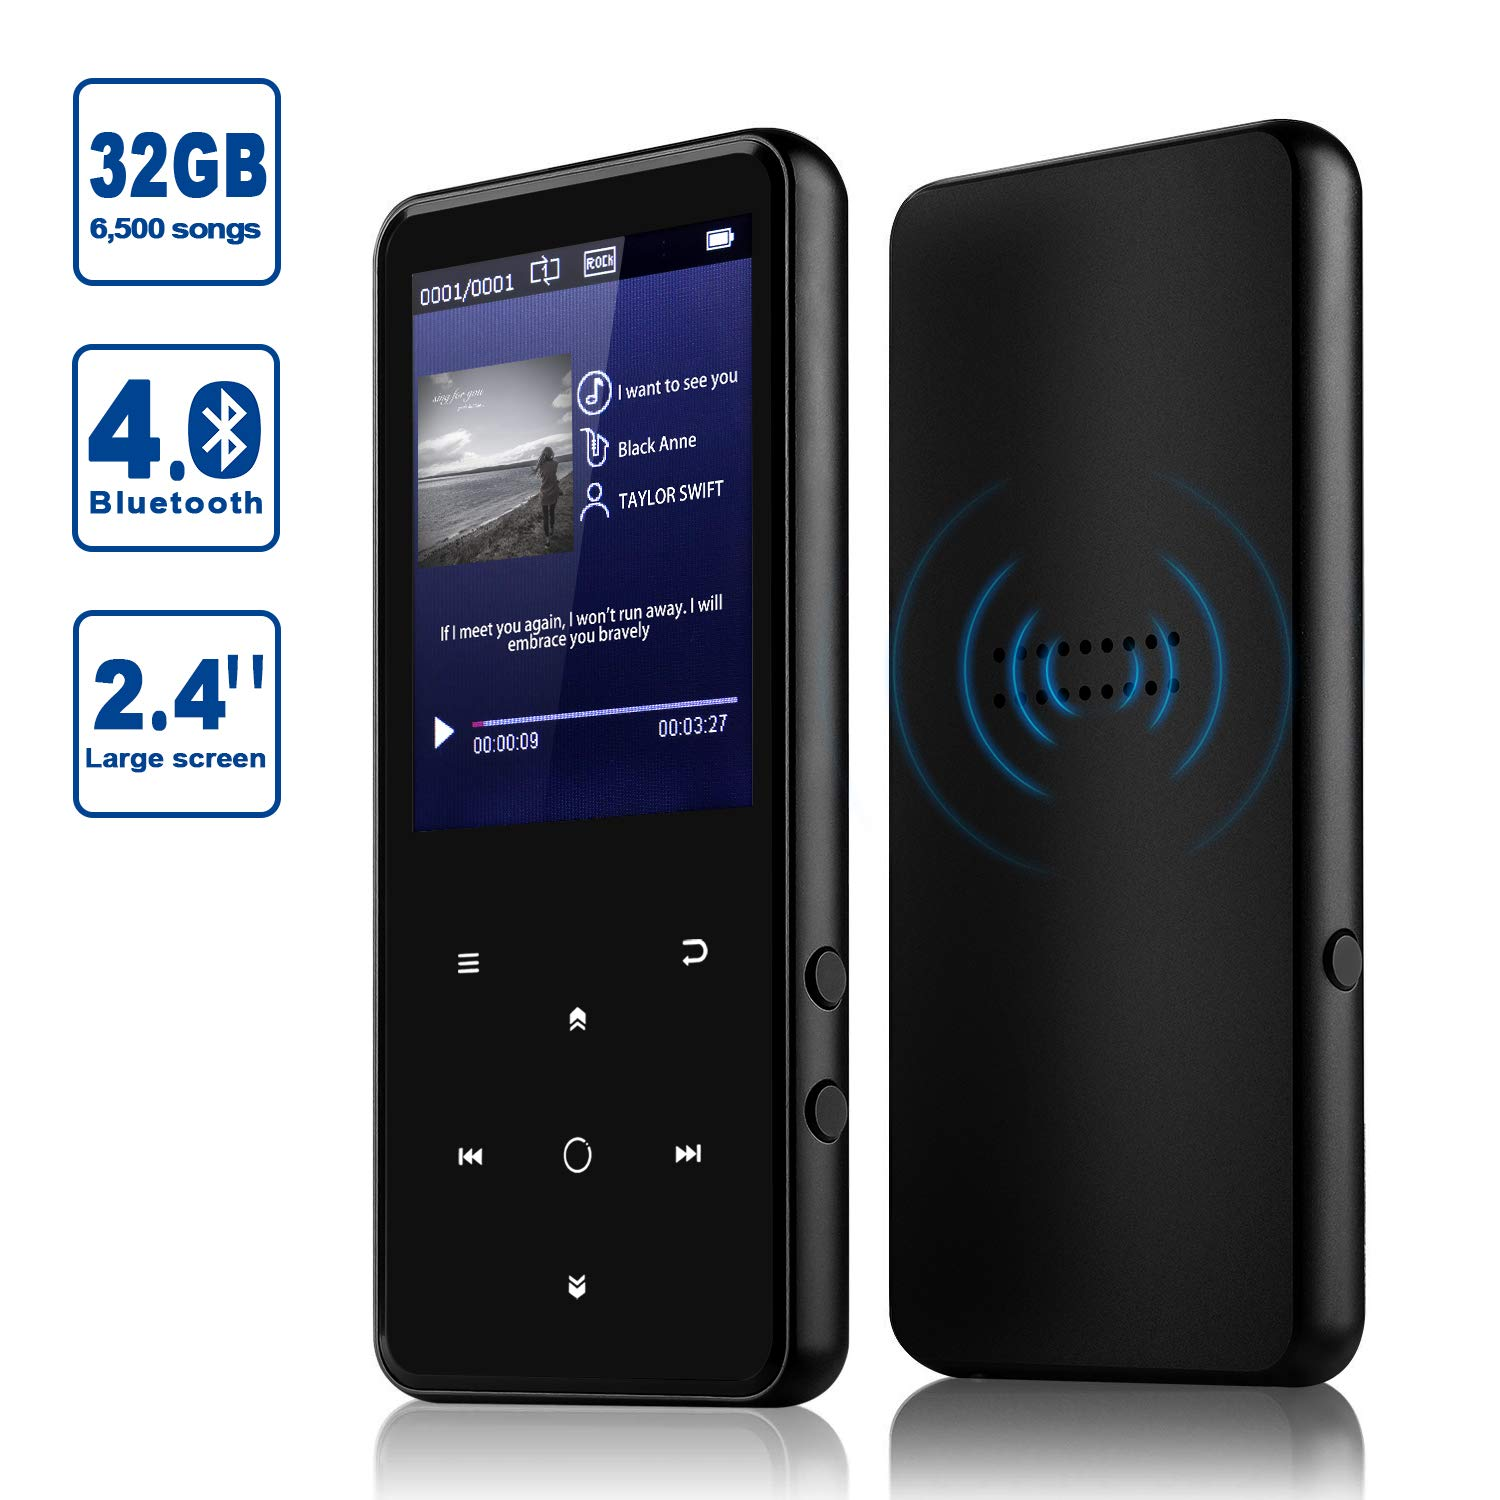 MP3 Player, Alptory 32GB MP3 Player with Bluetooth 4.0,Portable Sports Music Player 2.4'' Screen Built-in Speaker with Voice Recorder,Video Player,FM Radio,Text Reading, HiFi Lossless Sound